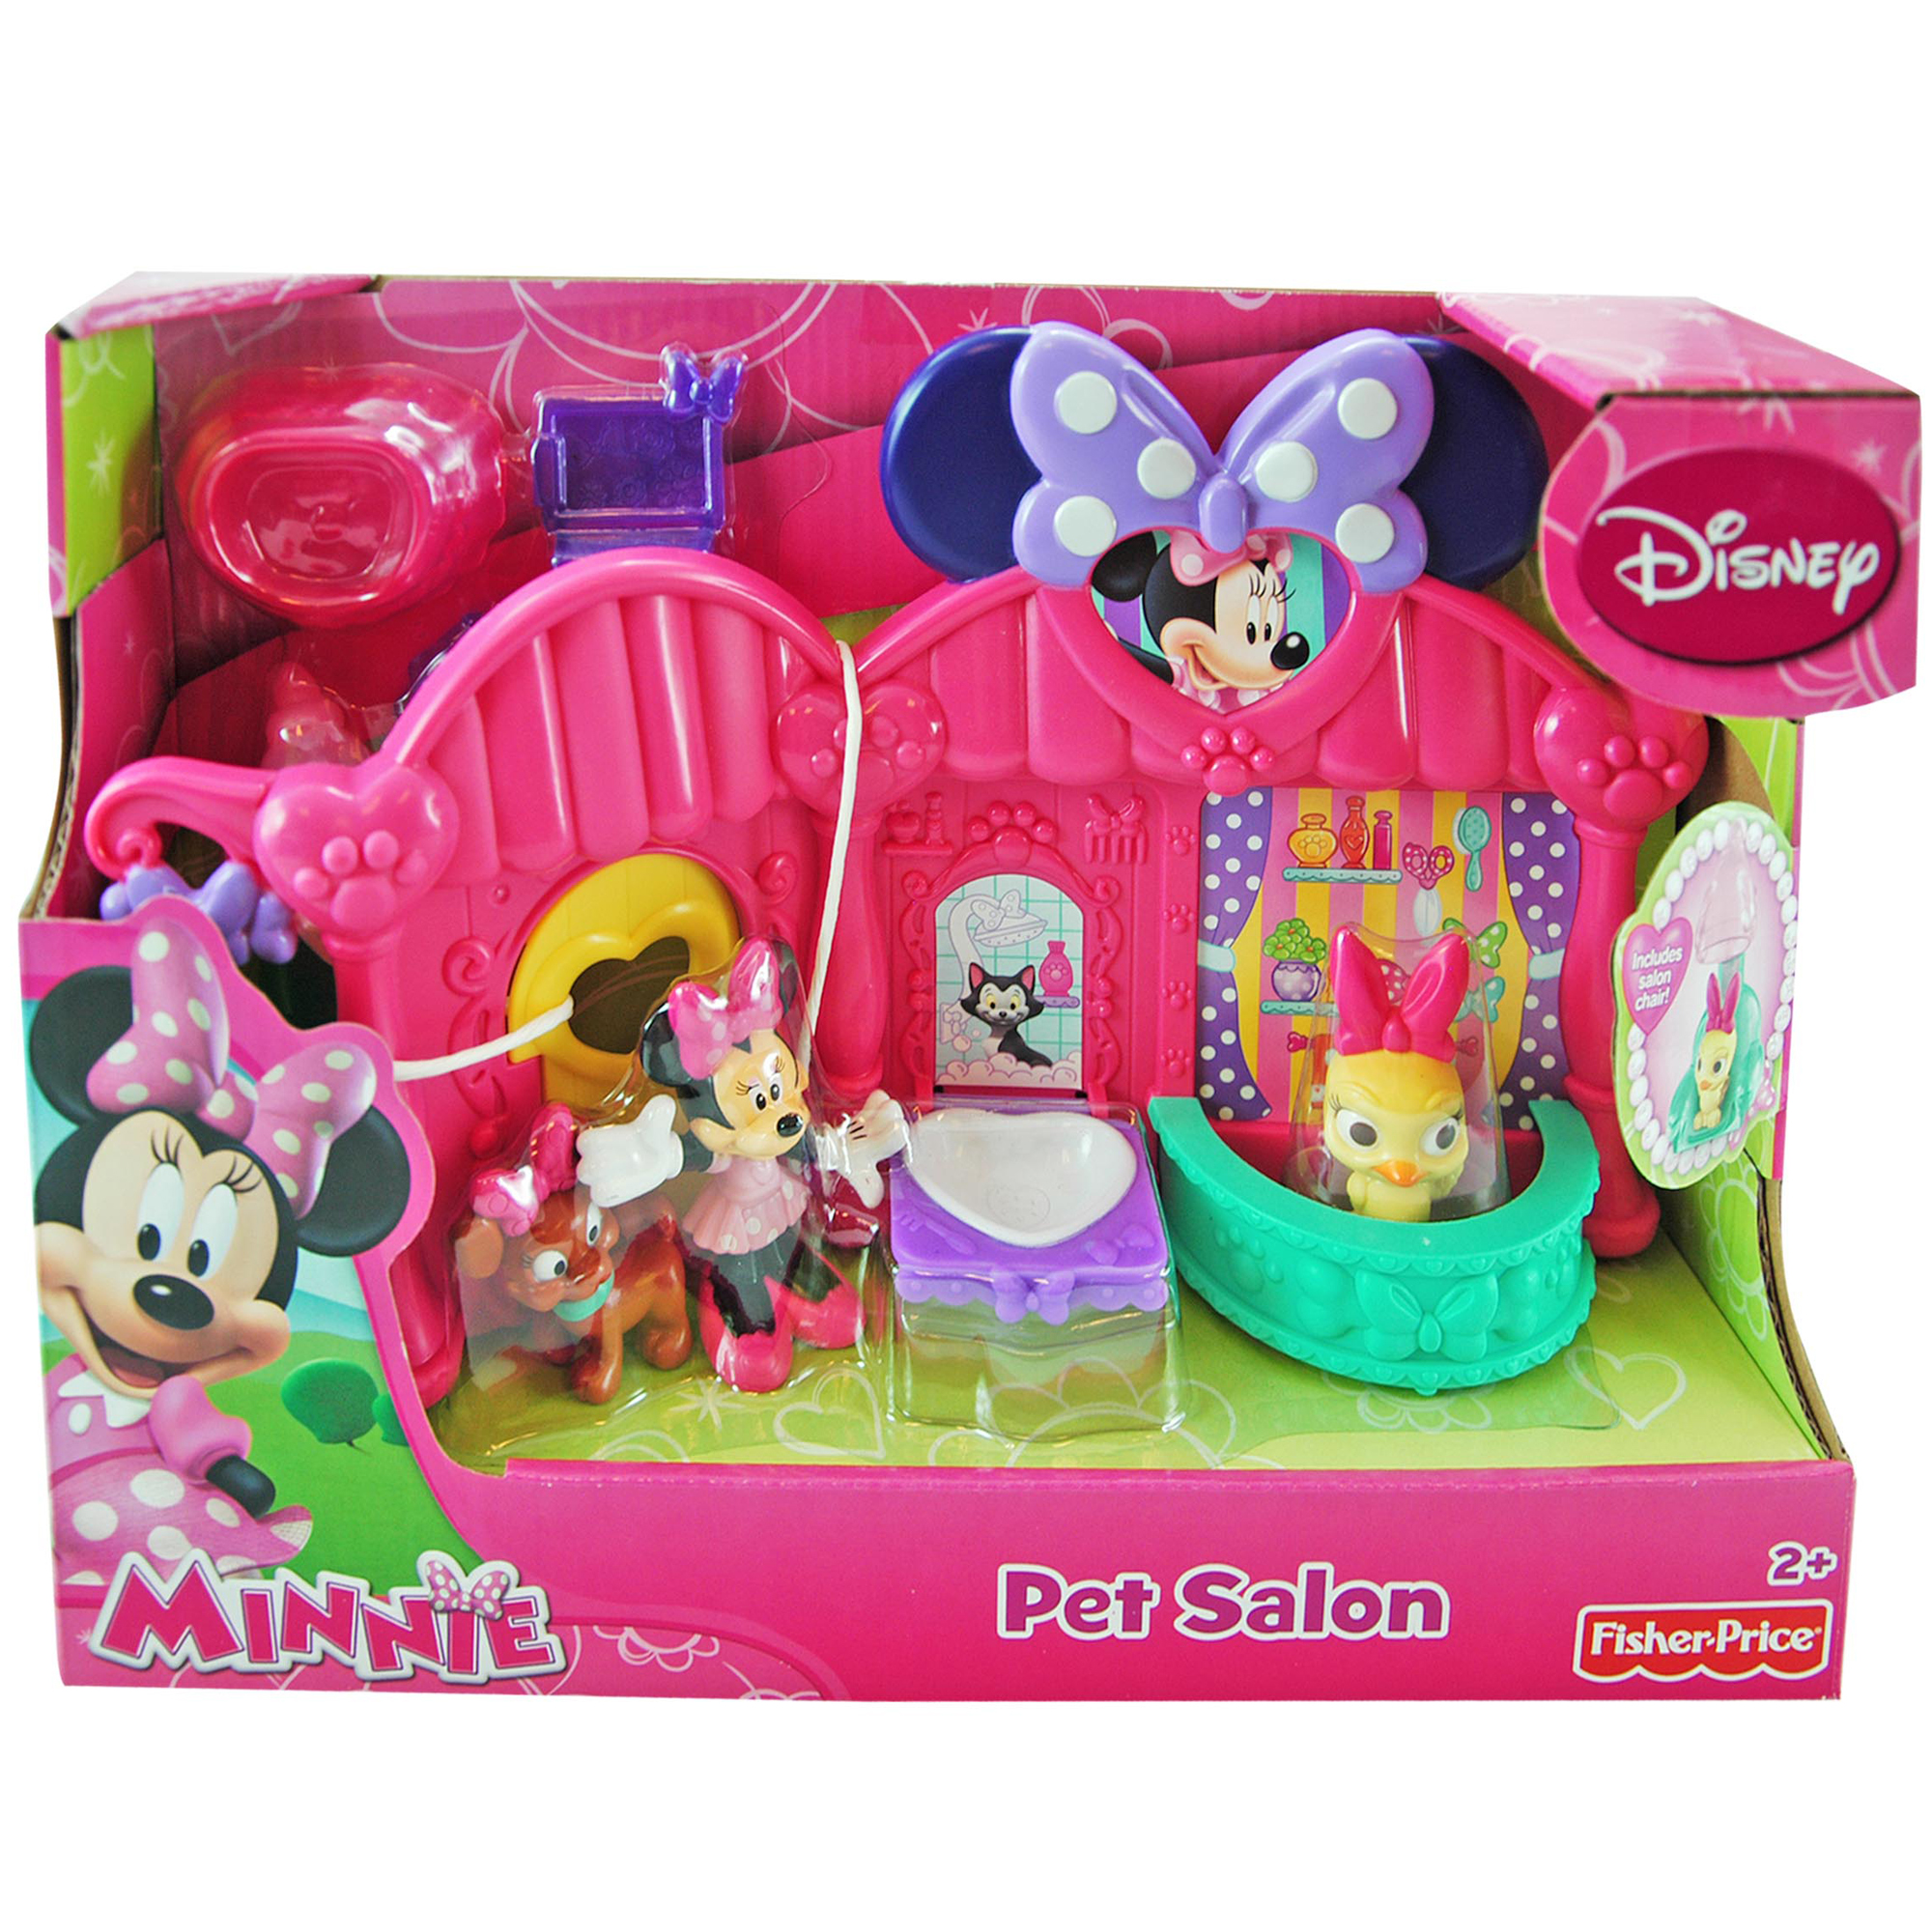 Disney 8pc Fisher Price Disney Minnie Mouse Bowtique Pet Animal Salon Set at Sears.com